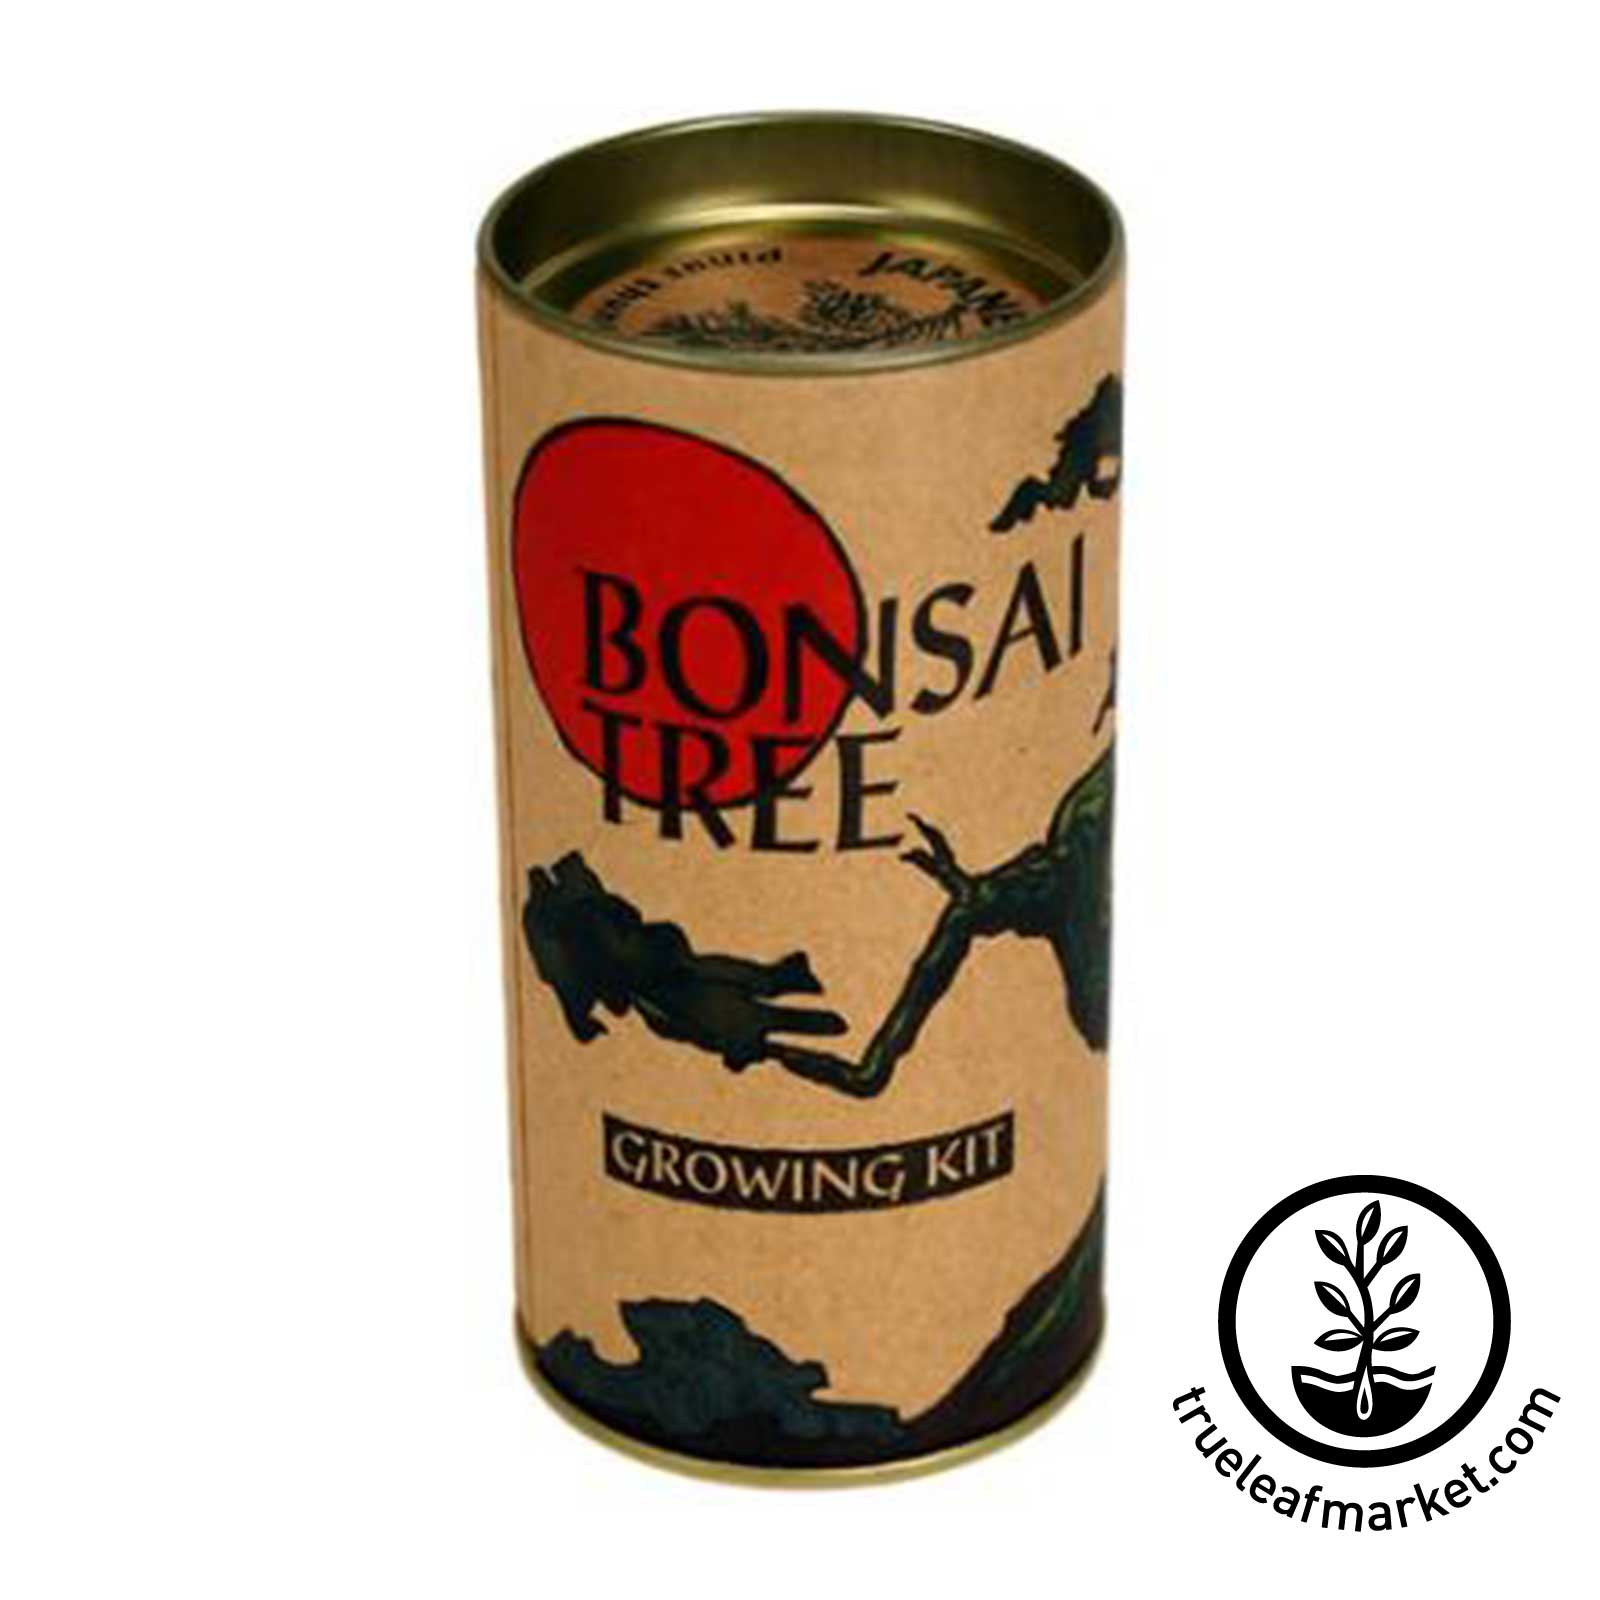 Japanese Black Pine Bonsai Tree Kit tree, kit, trees, japanese, black, pine, seed